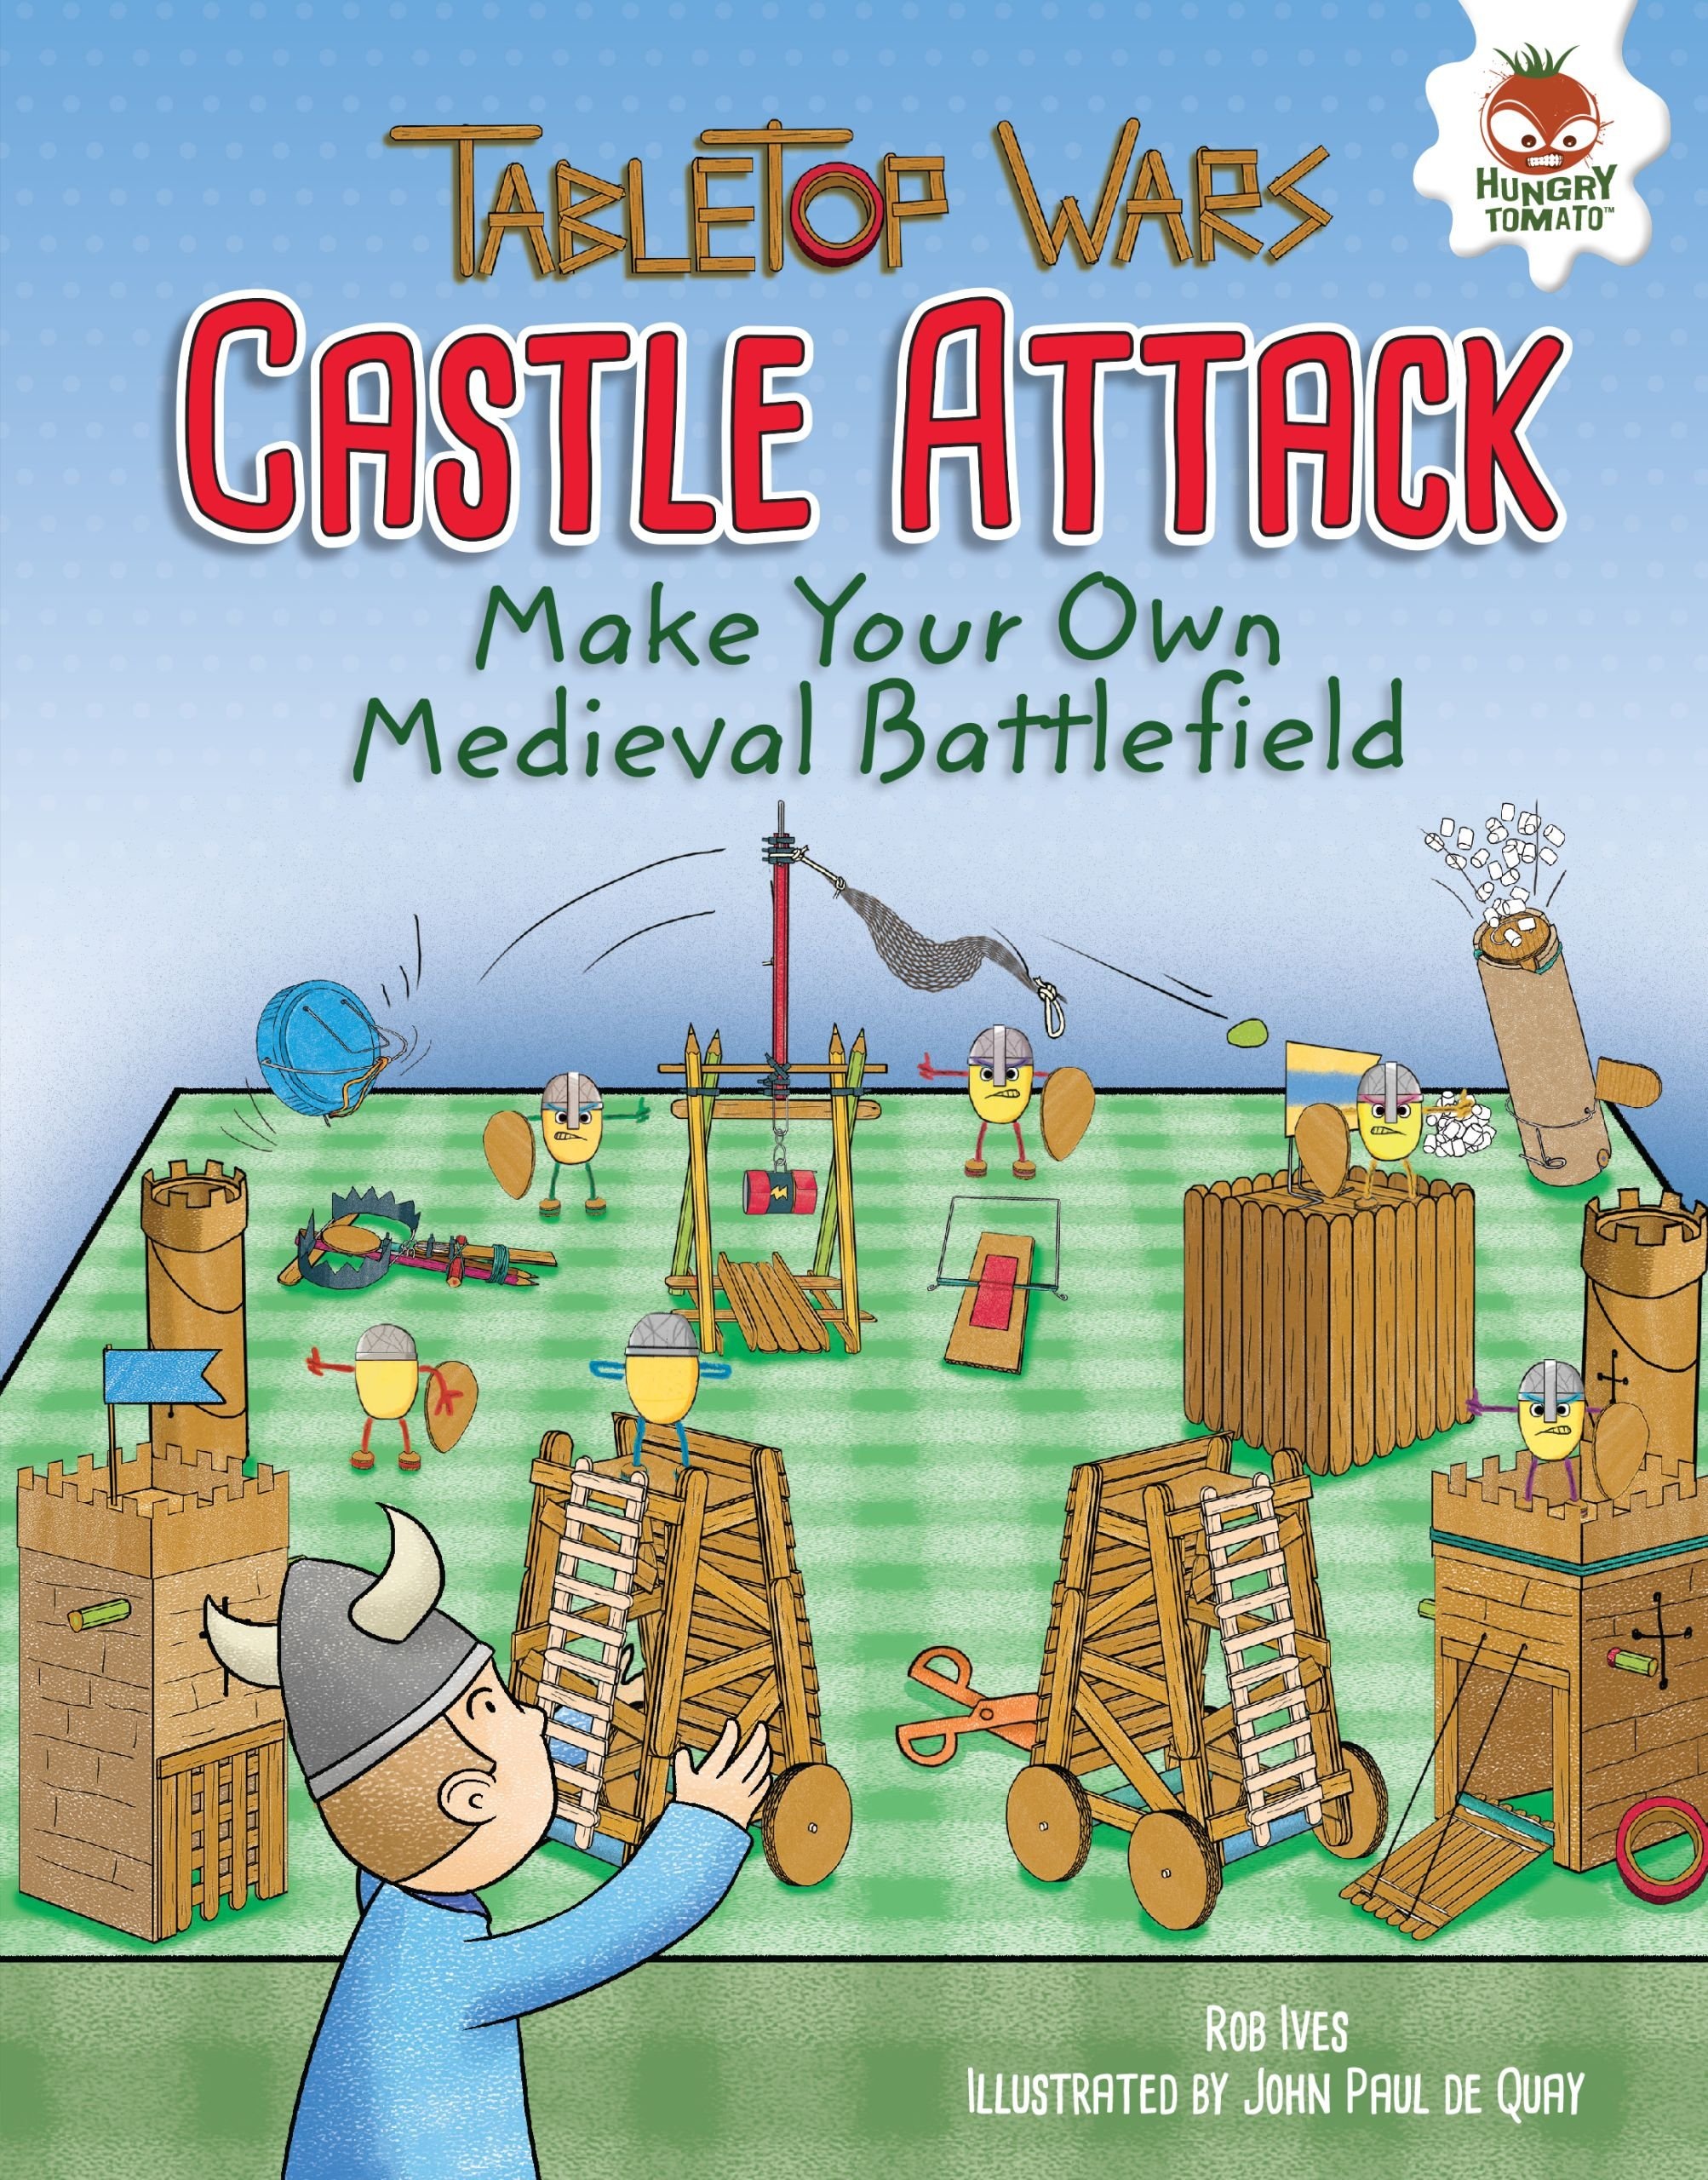 Make Your Own Medieval Battlefield (Tabletop Wars) by Hungry Tomato (Image #1)